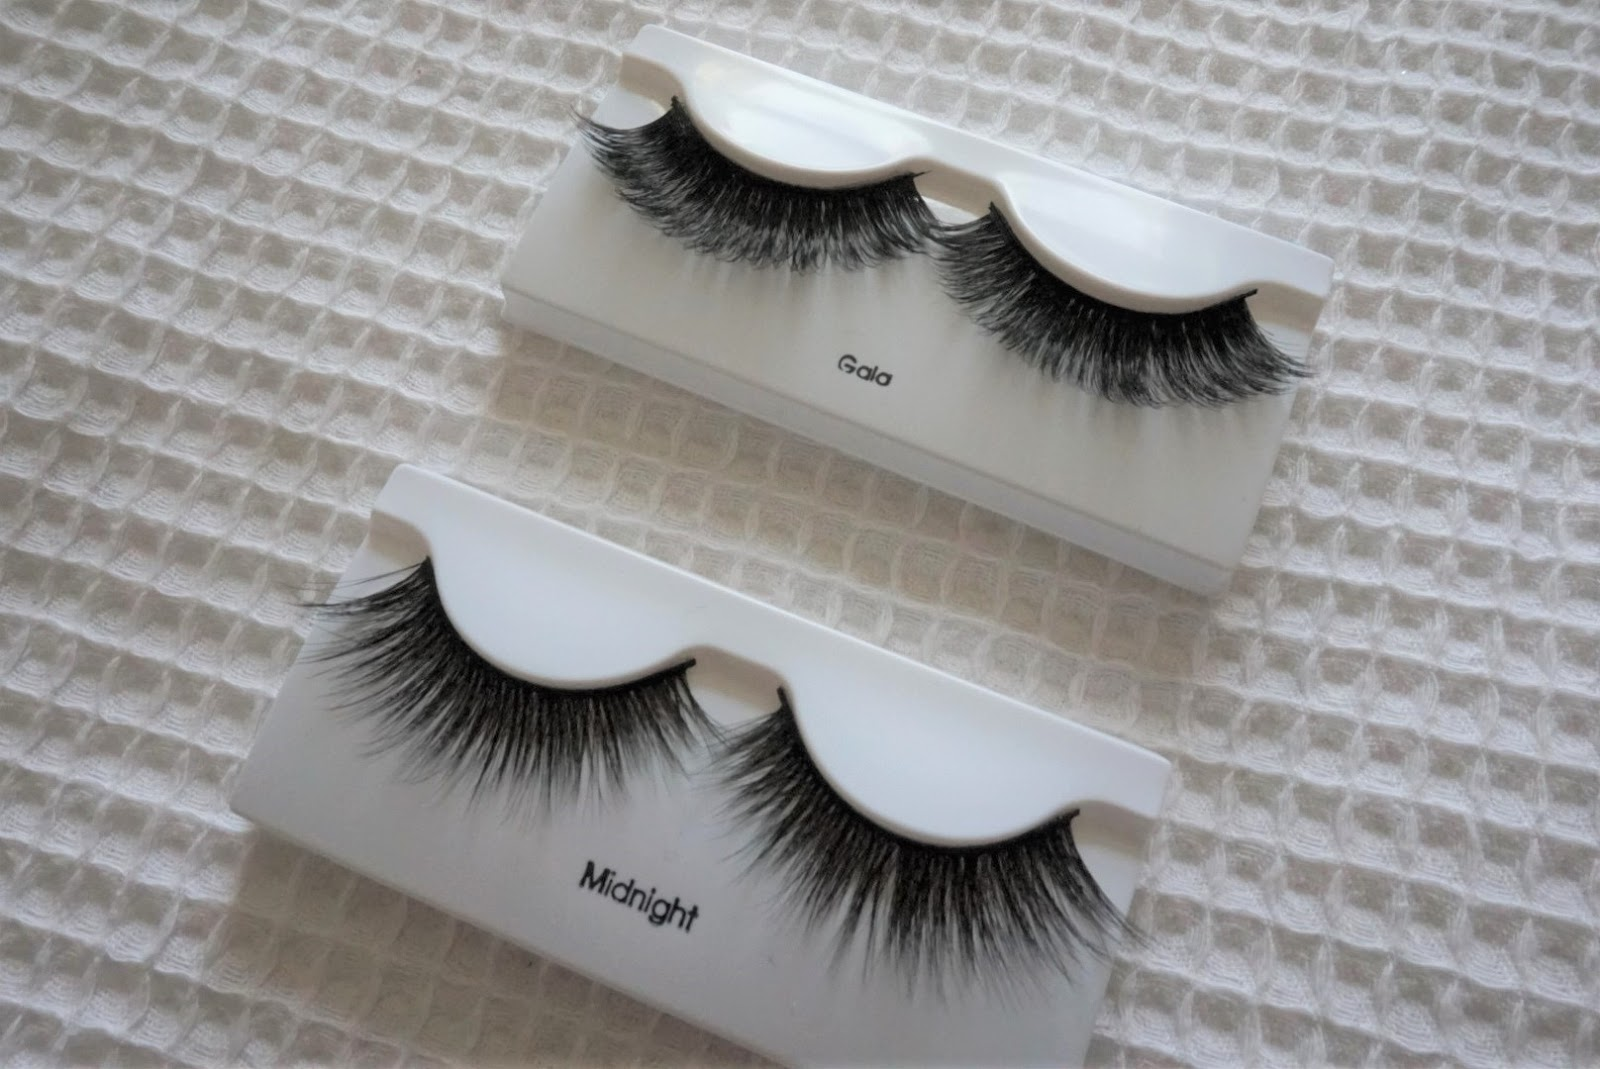 79790f14269 I was sent Gala & Midnight alongside their lash glue to review. Gala are  very dramatic with a lot of volume and curl, whereas Midnight are more  feathery and ...